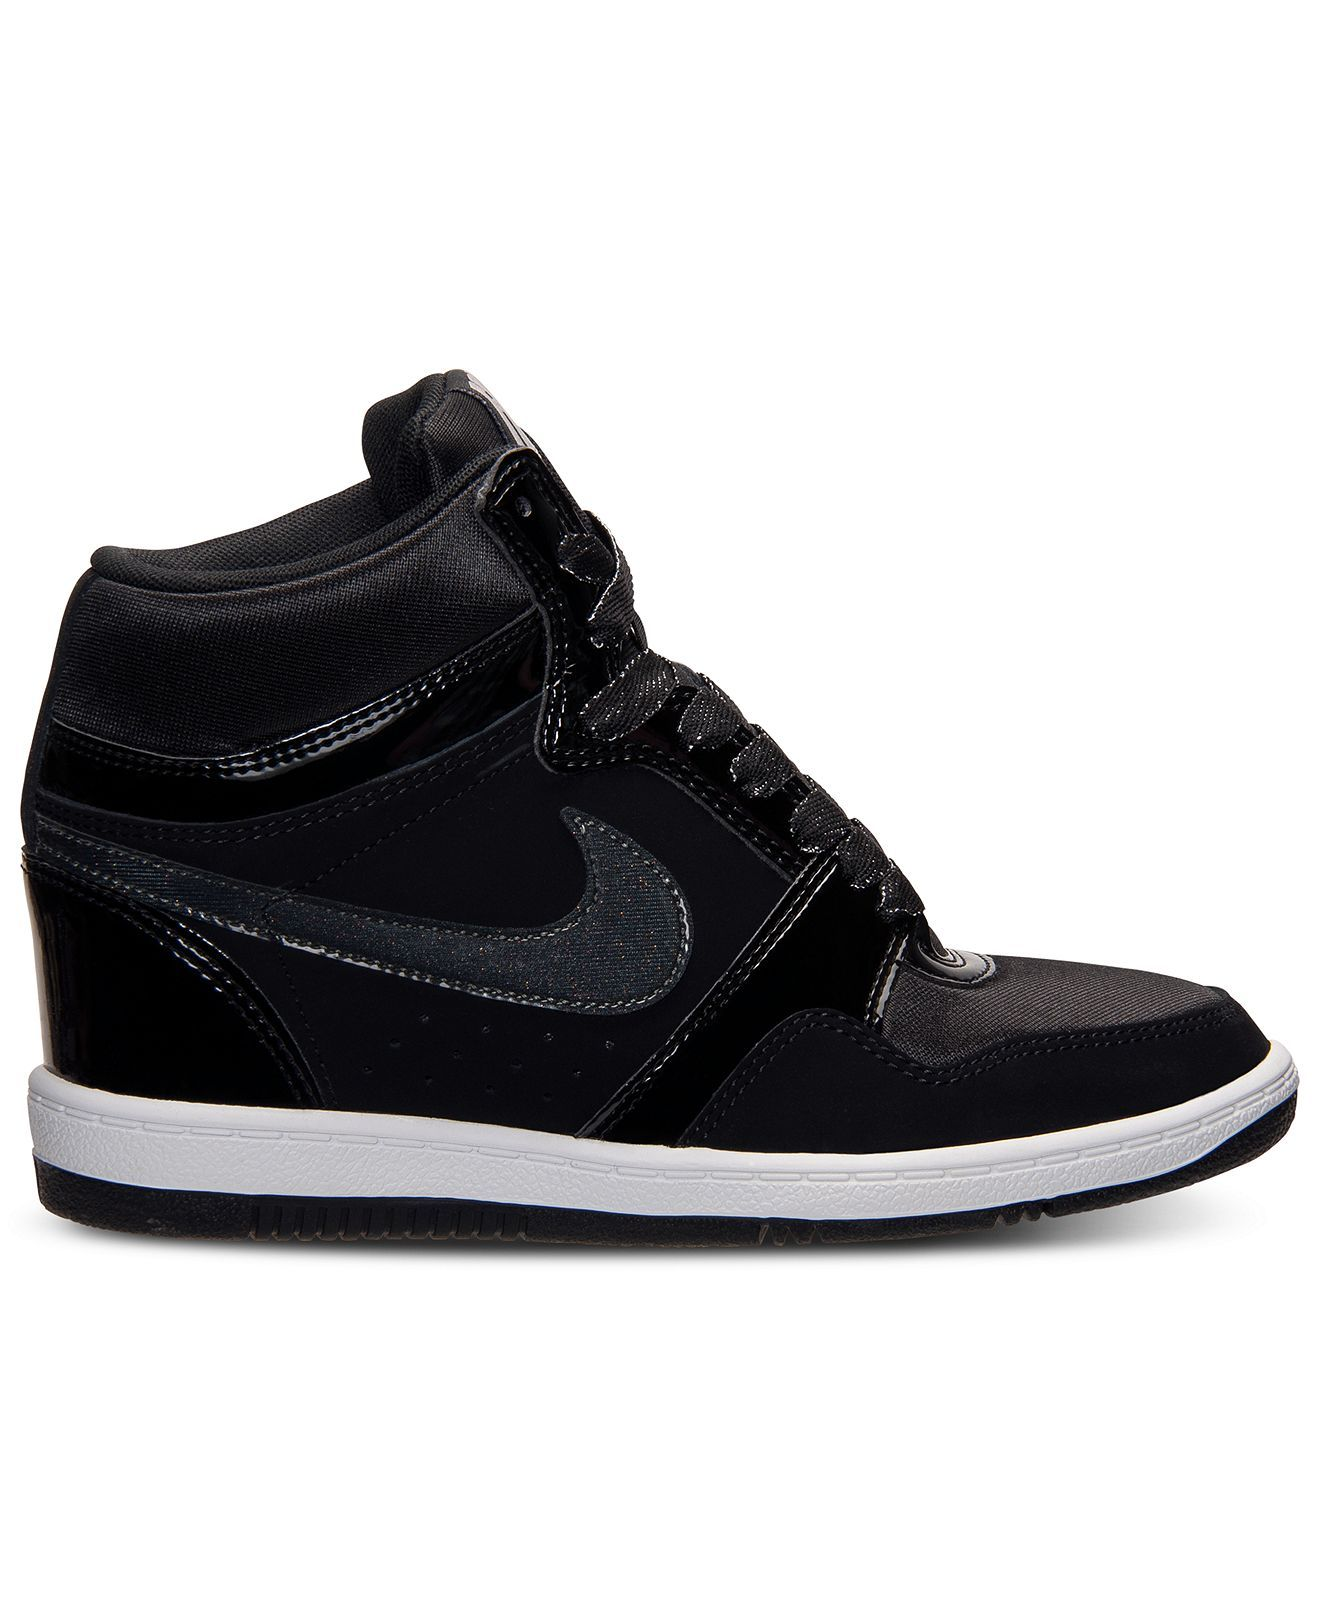 lowest price d94e3 c2288 ... coupon code for nike force sky hi in black anthracite 84.99 cda3b 30cd3